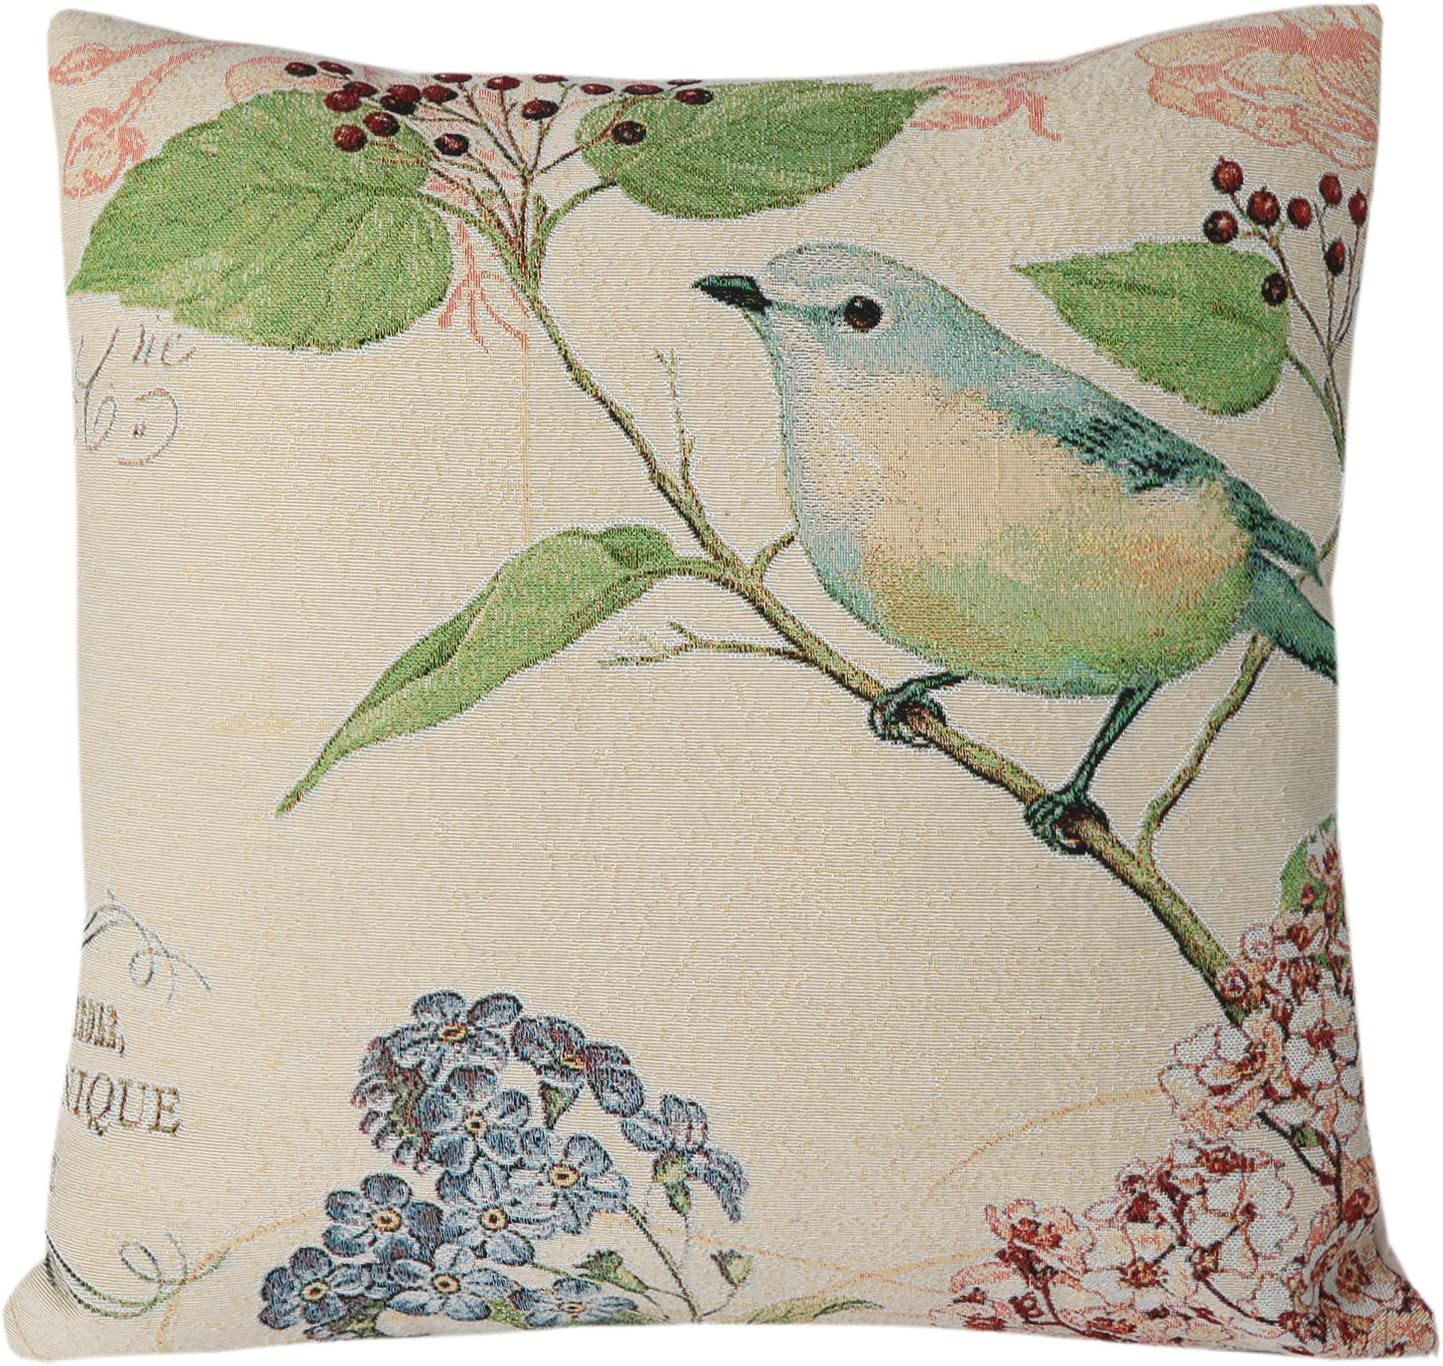 SimpleDecor Jacquard Bird On the Tree Accent Decorative Throw Pillow Case Hand Painted Cushion Cover Cute Traditional Chinese Painting 18X18 by Simple